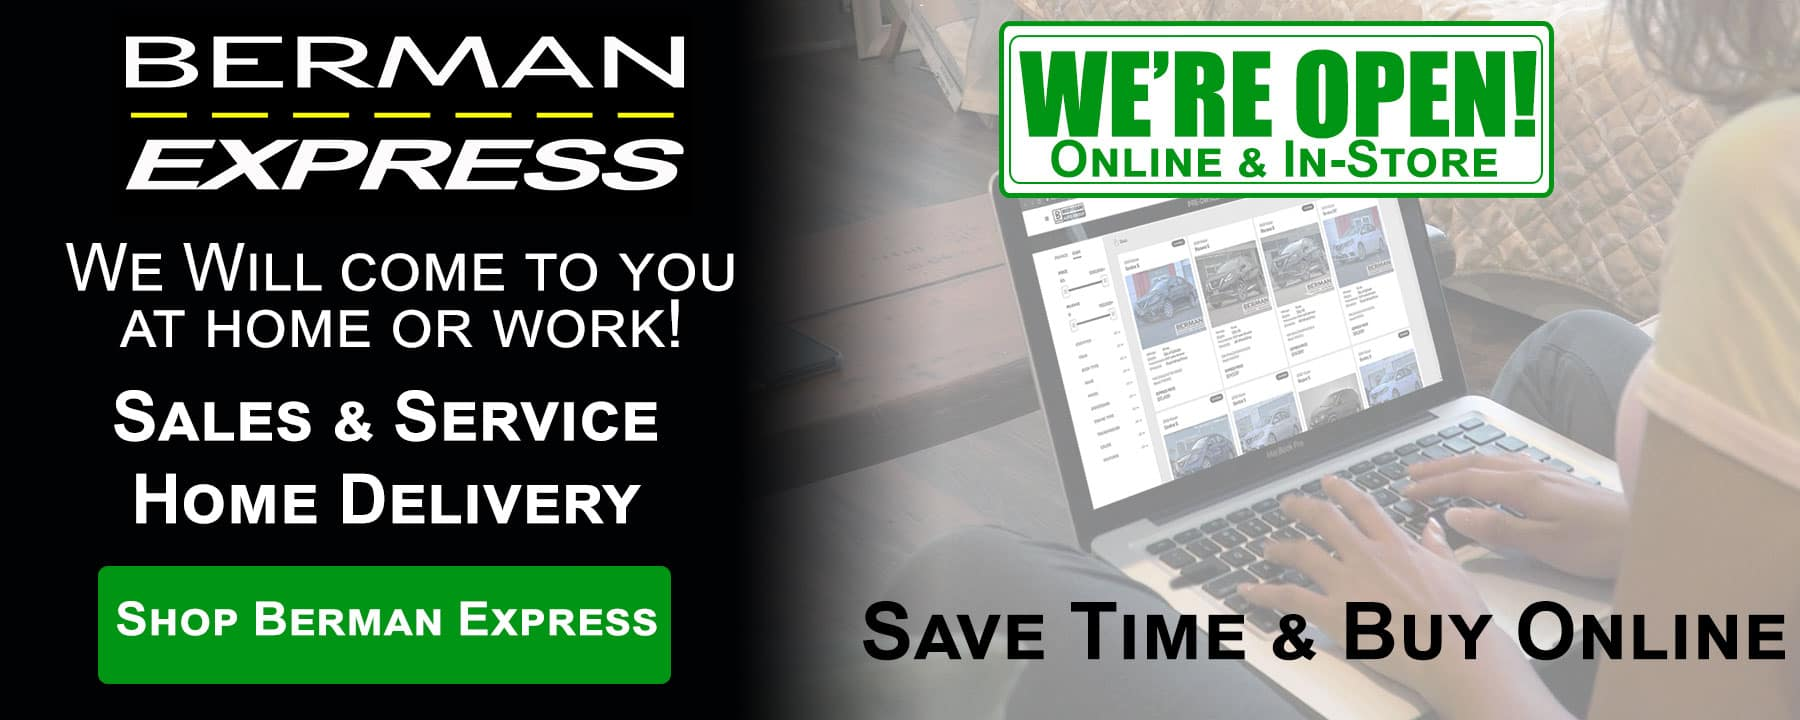 We're Open! Get At-Home Delivery for Sales and Service with Berman Express!